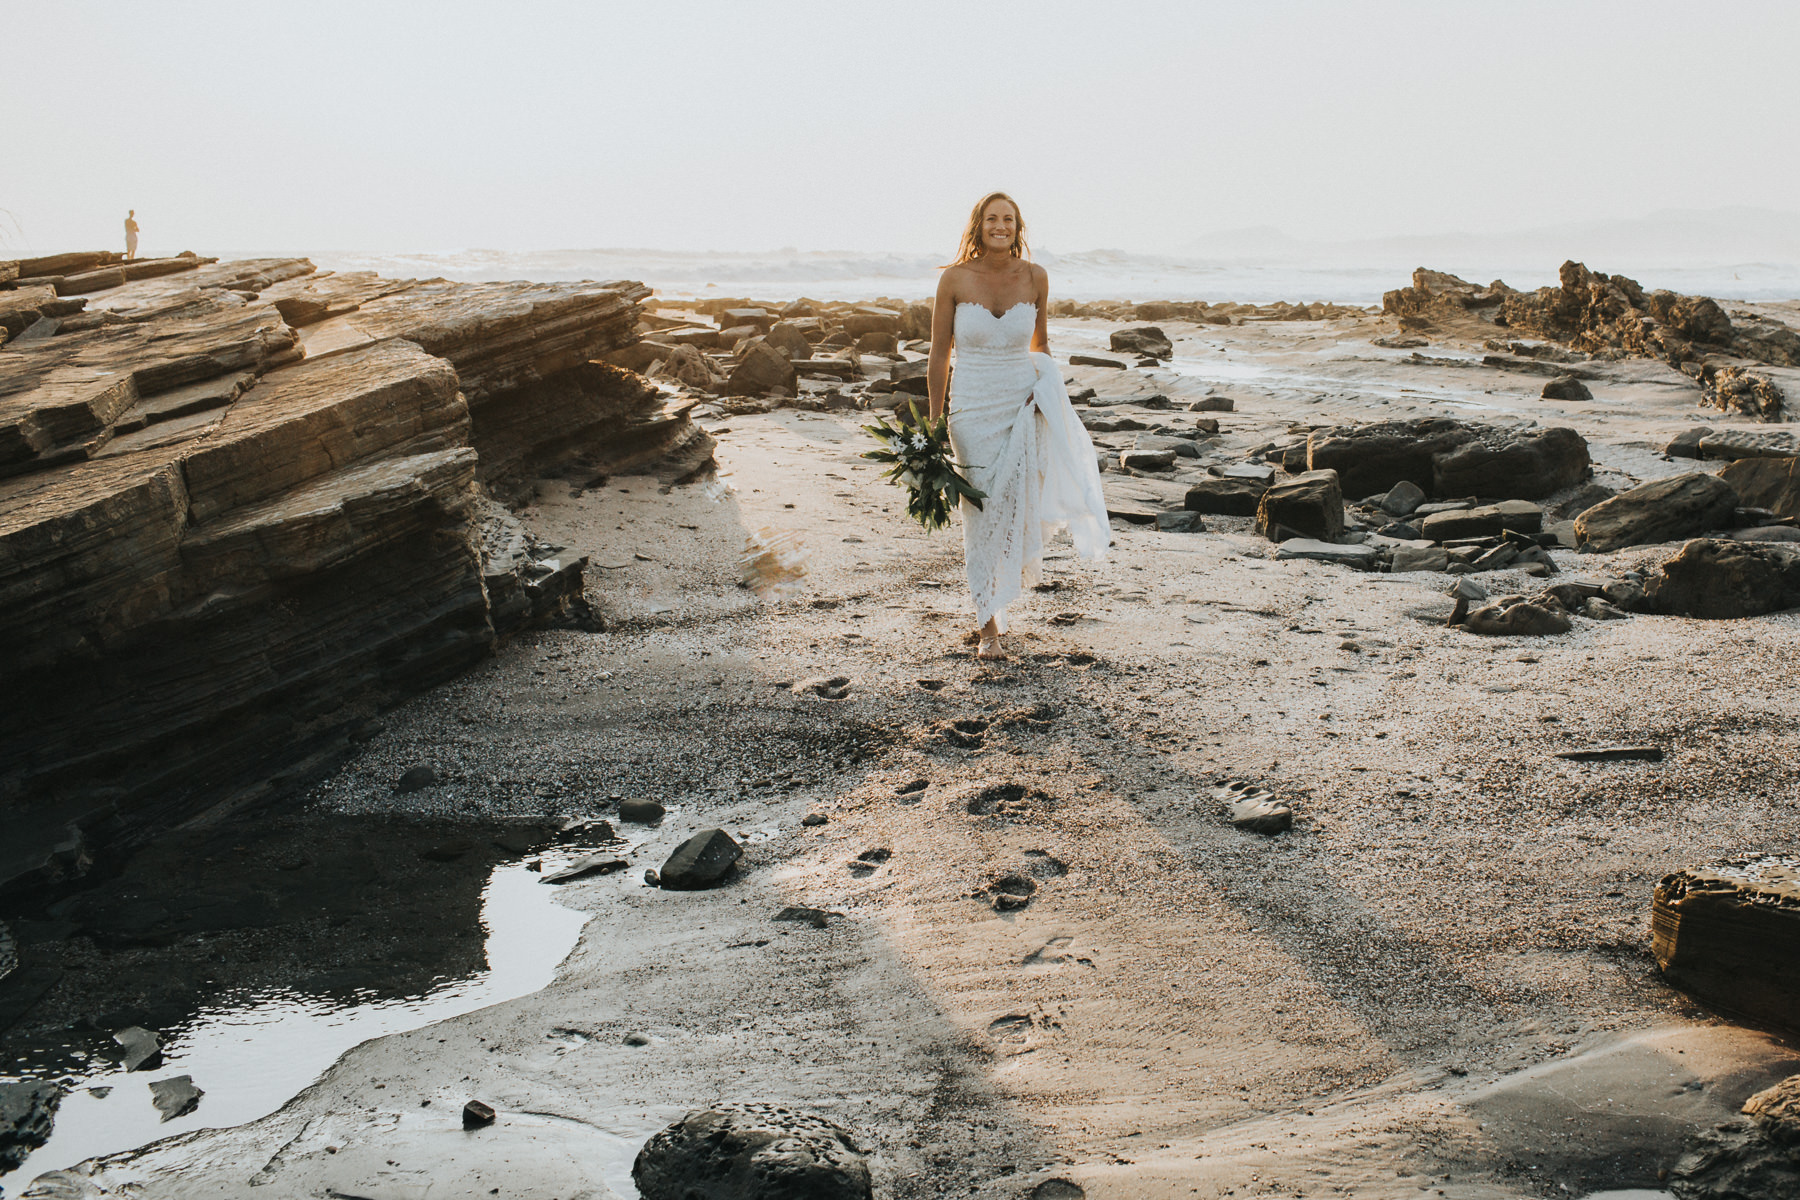 The bride - Costa Rica beach wedding photographer